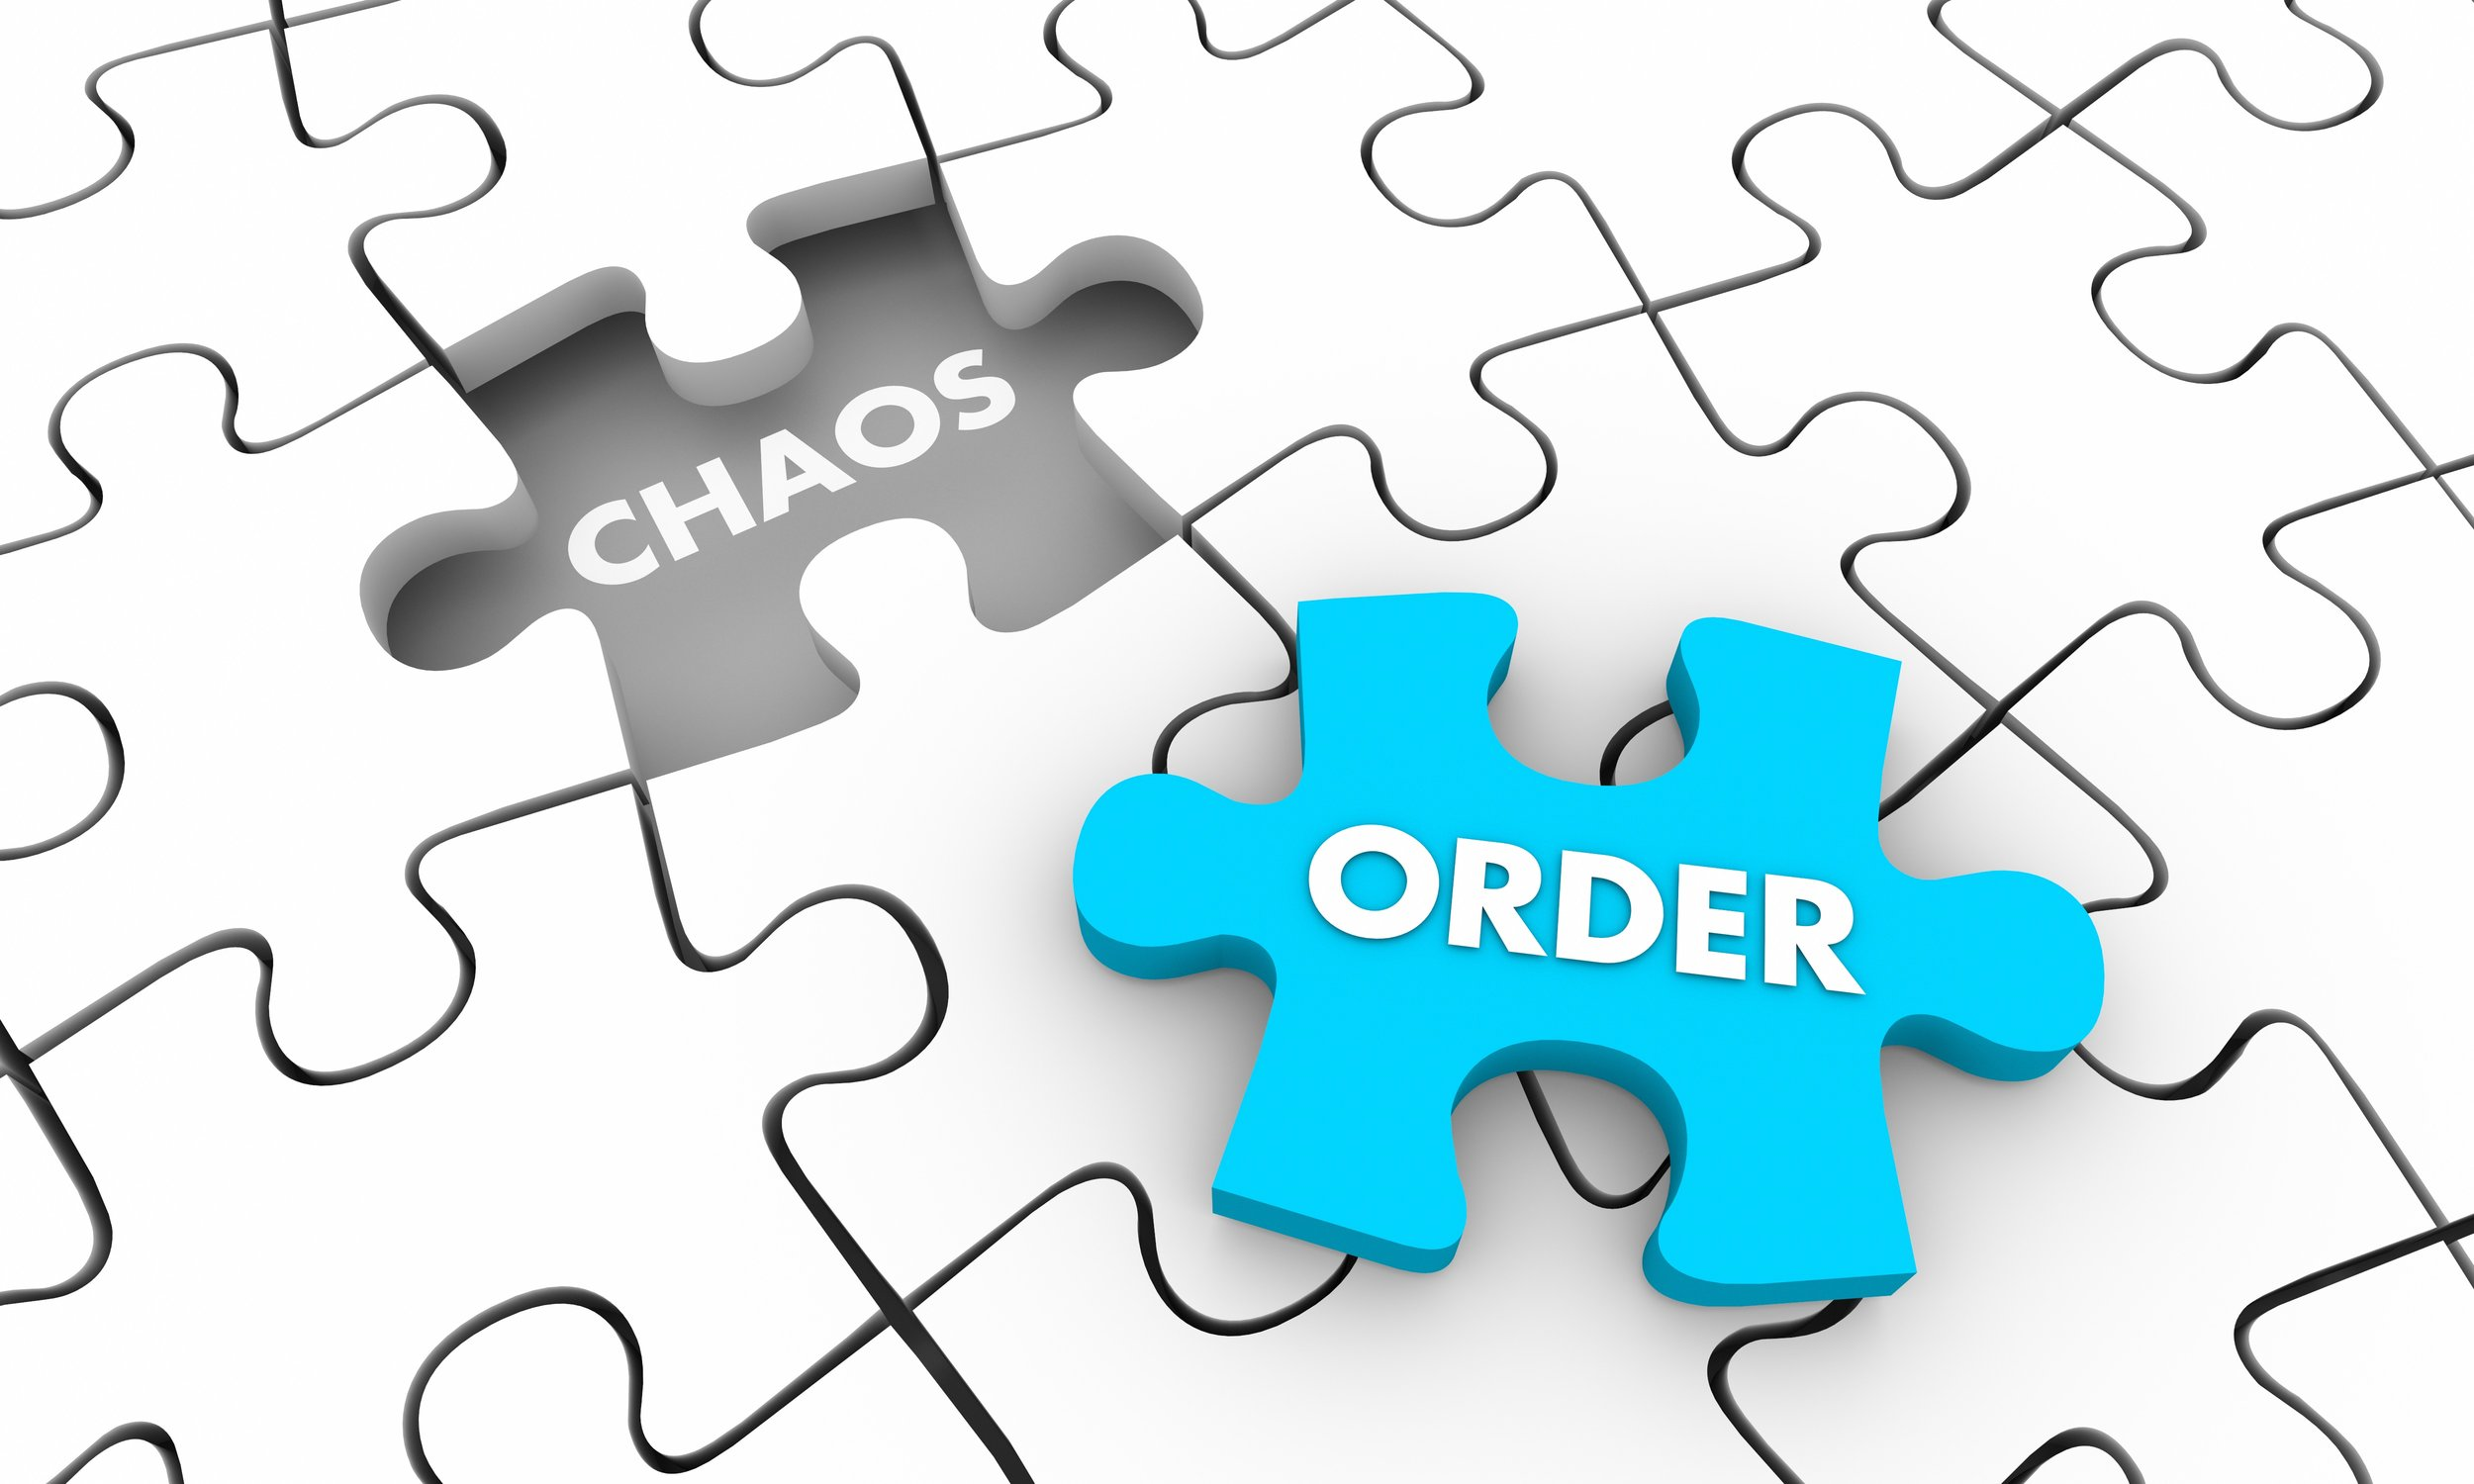 Chaos and Order are two sides of a coin. If you experience chaos, you can flip that coin to find order.  Photo courtesy: Shutterstock